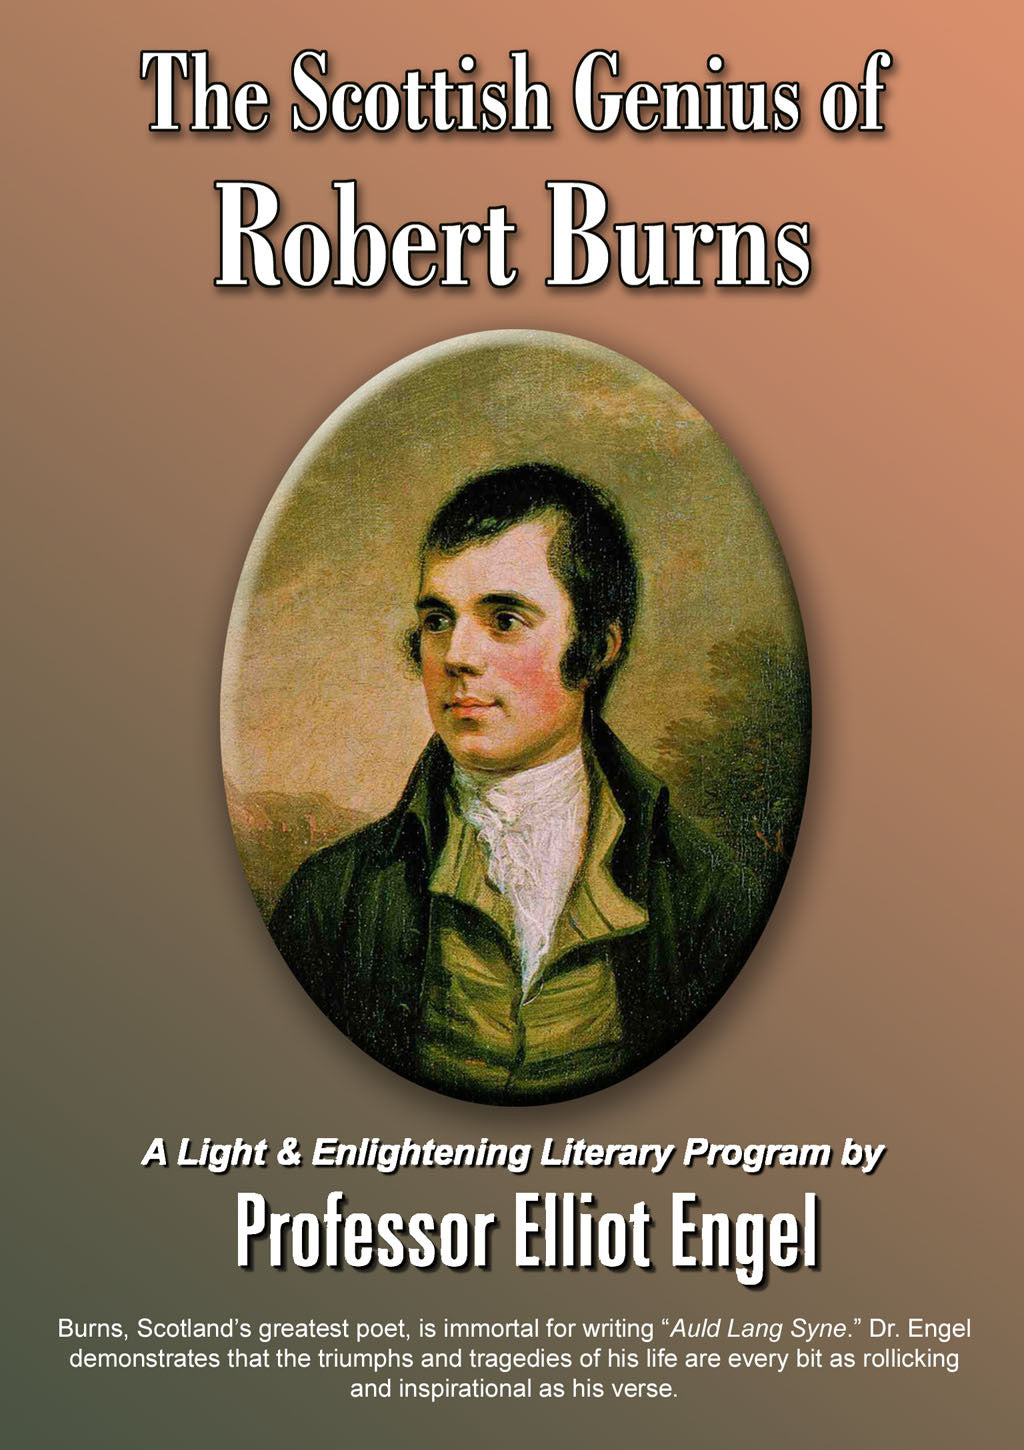 The Scottish Genius of Robert Burns